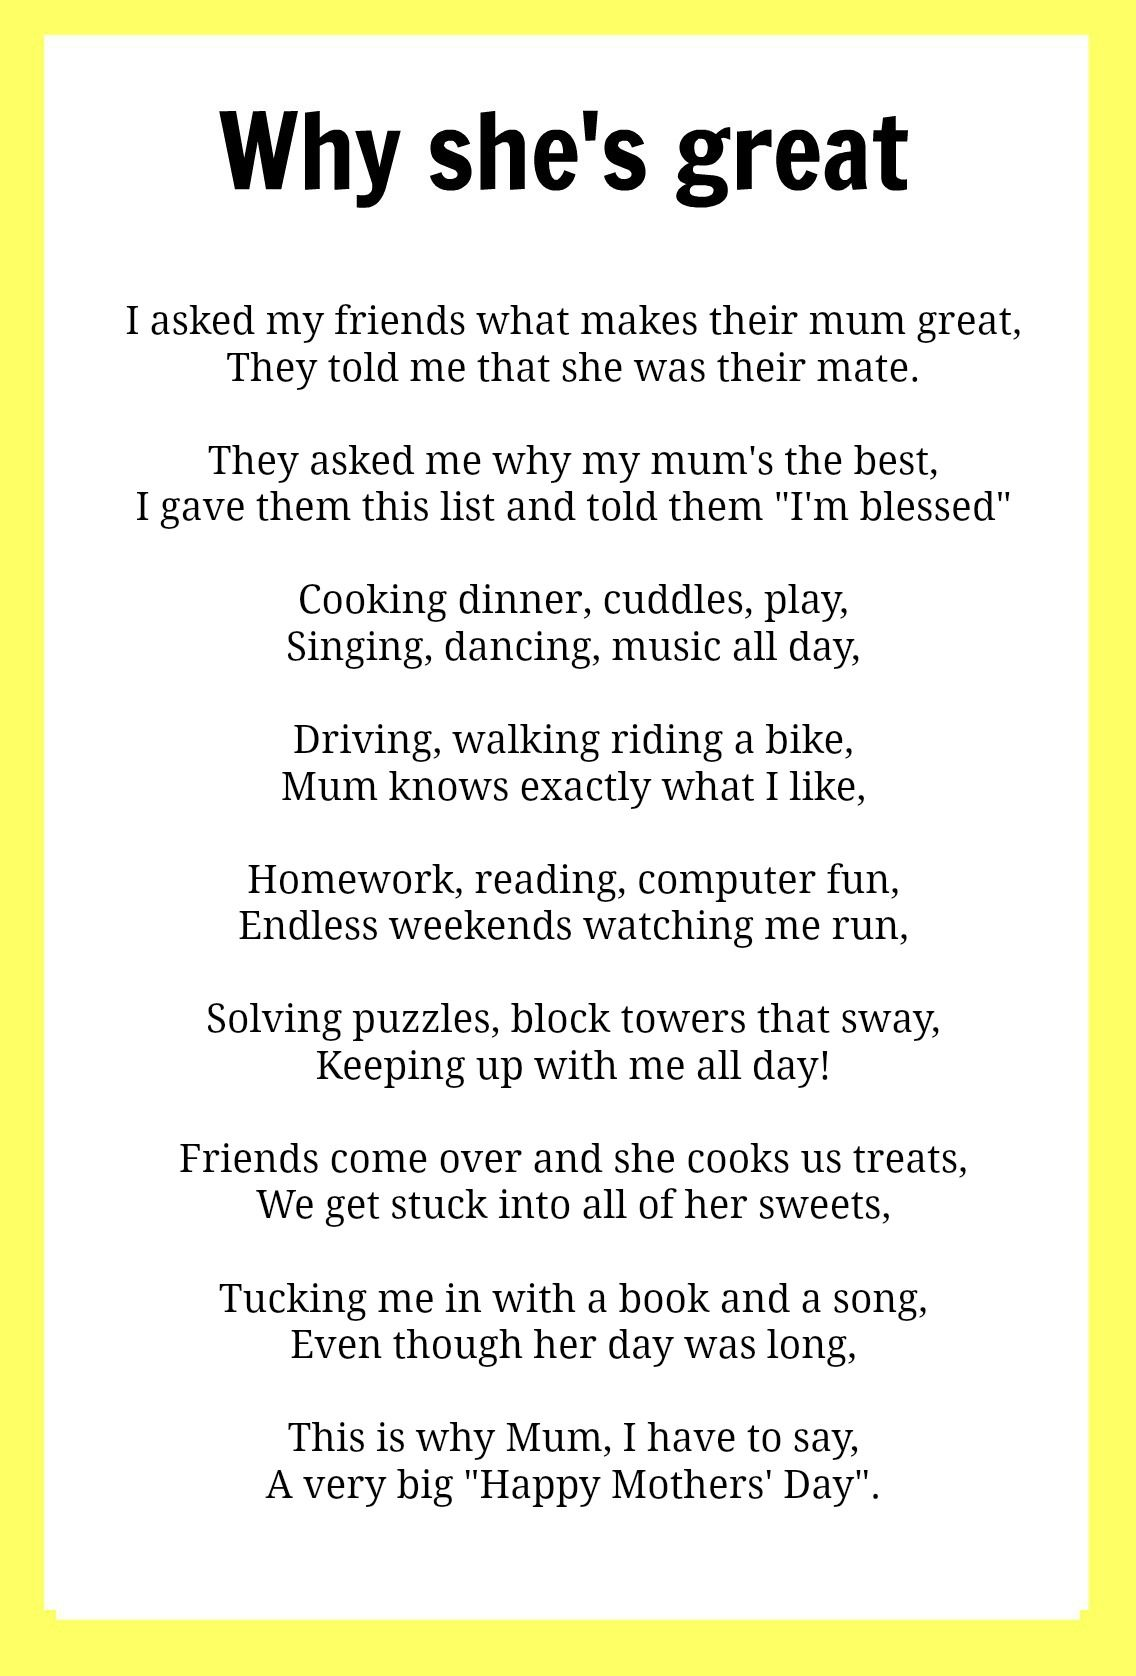 Happy Mother's Day poem adapted from speaking-domestically.com ...